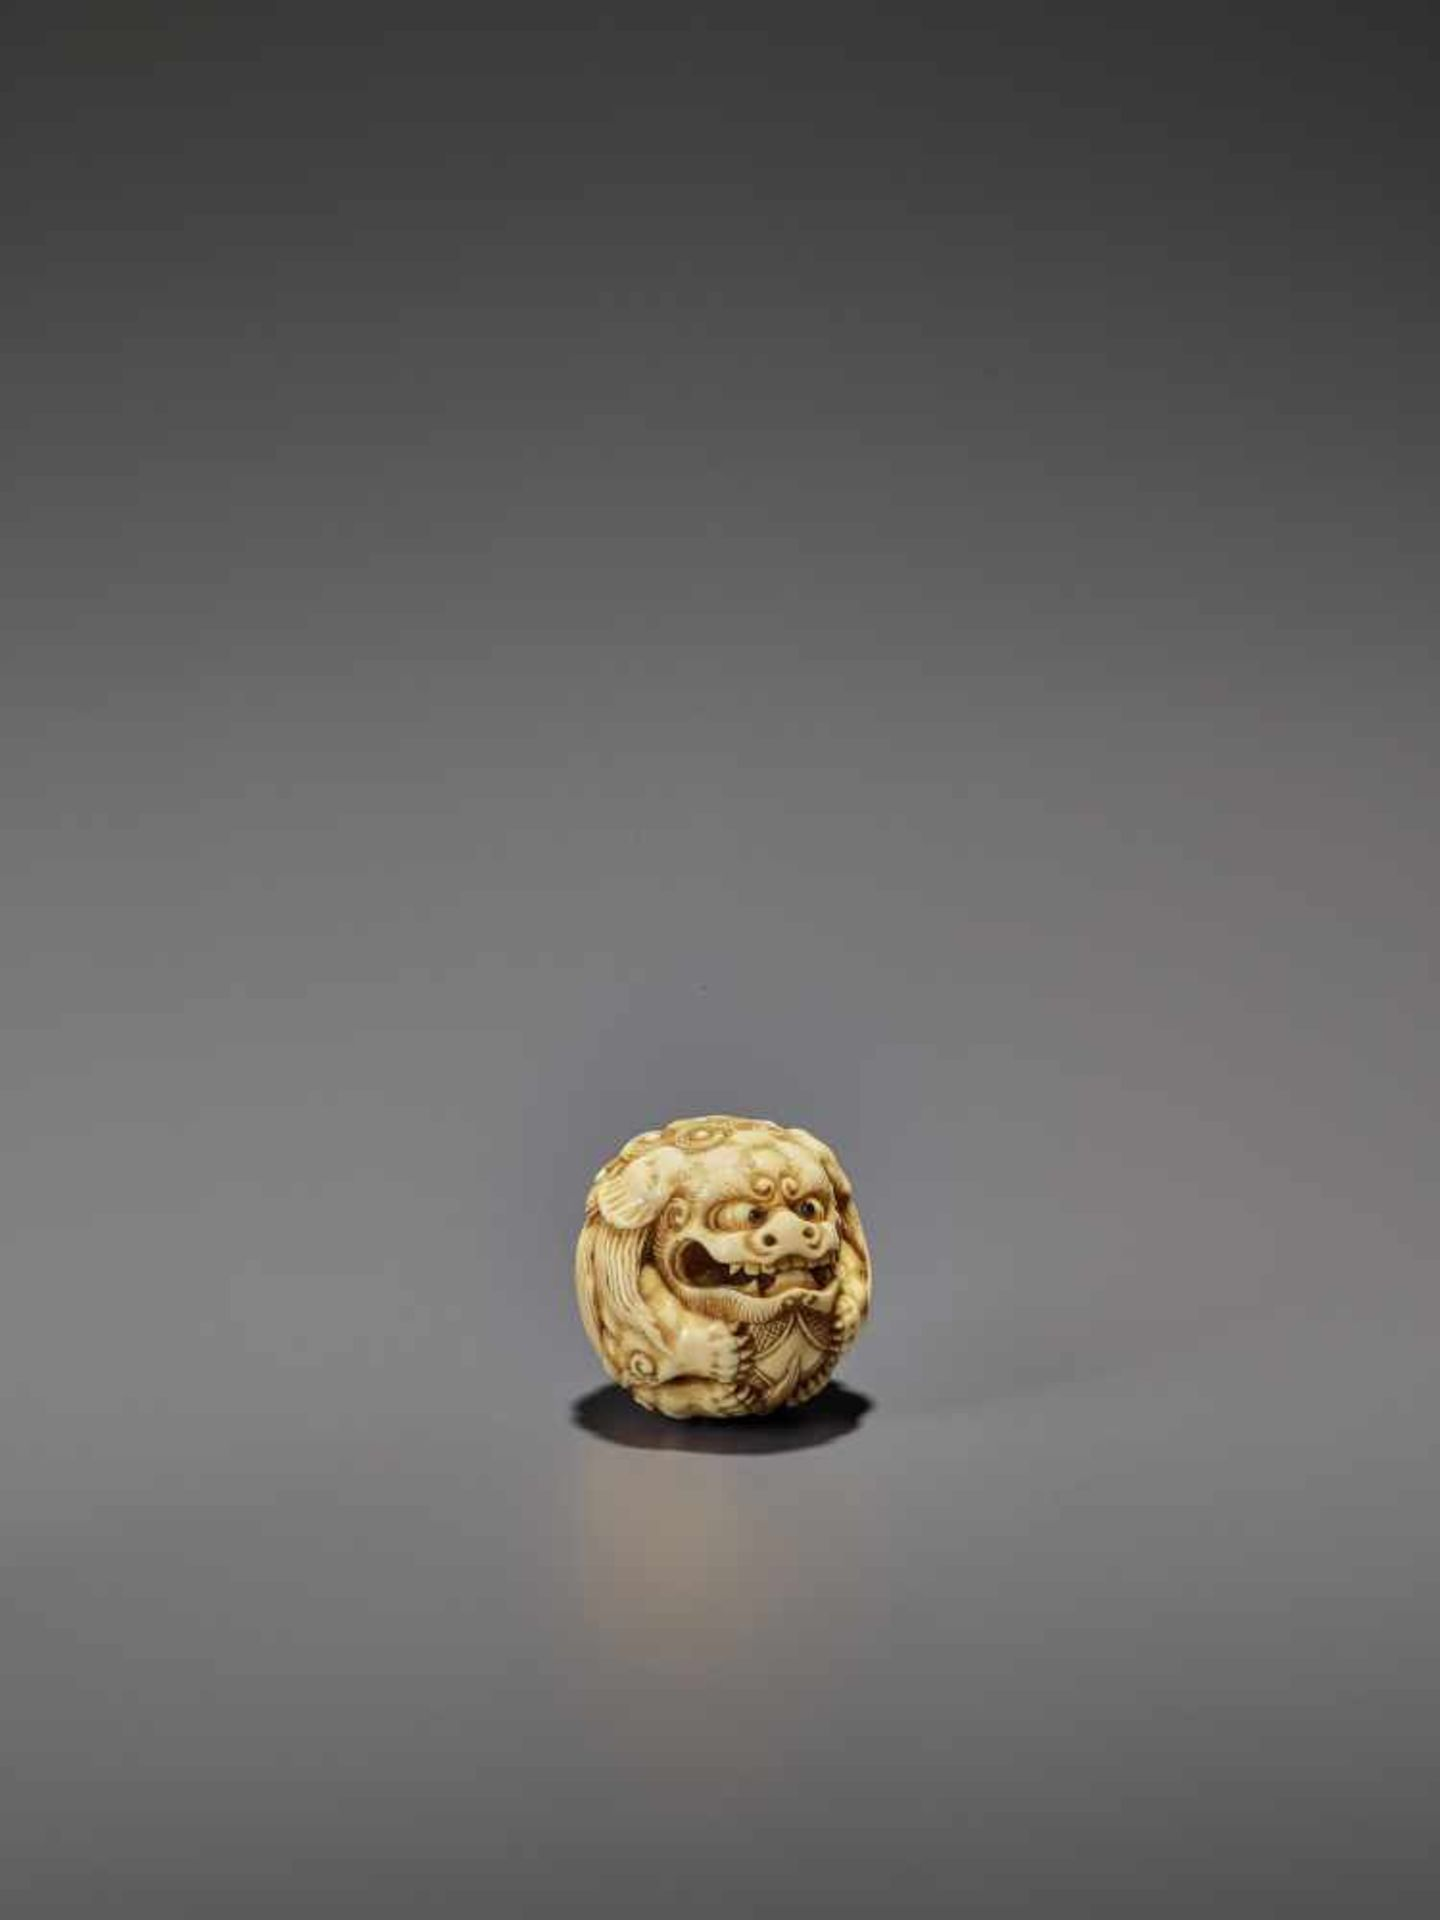 AN IVORY NETSUKE OF A SHISHI ROLLED INTO A BALL UnsignedJapan, 19th century, Edo period (1615-1868) - Image 3 of 9